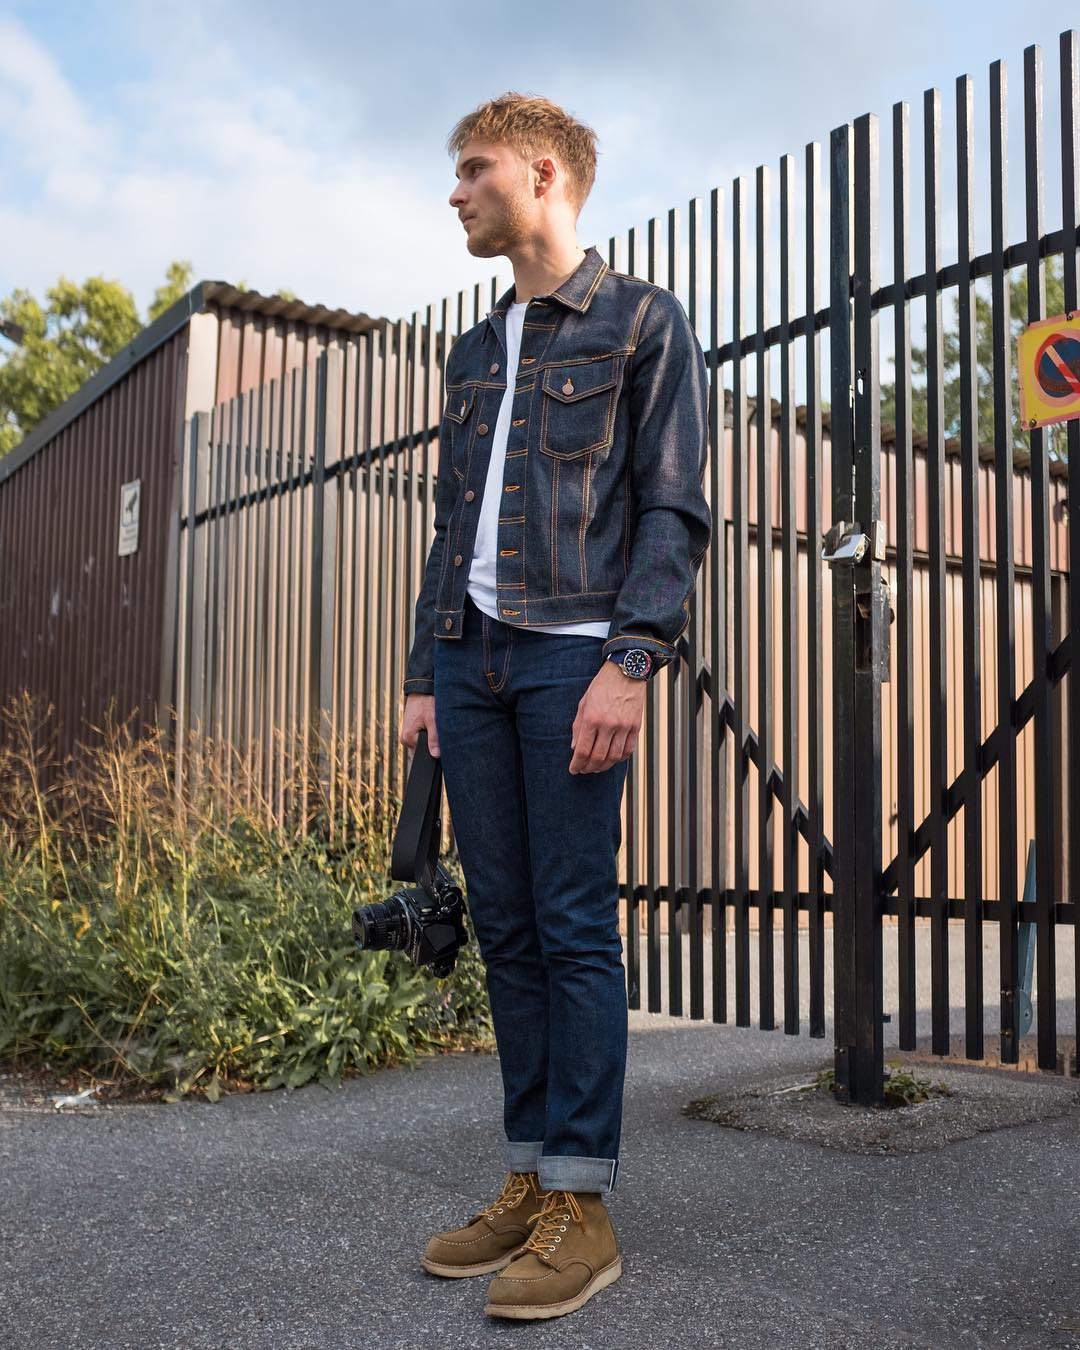 Must-follow Instagrammers, Denimhunters, raw denim, Swedish denim dudes, swedishblues